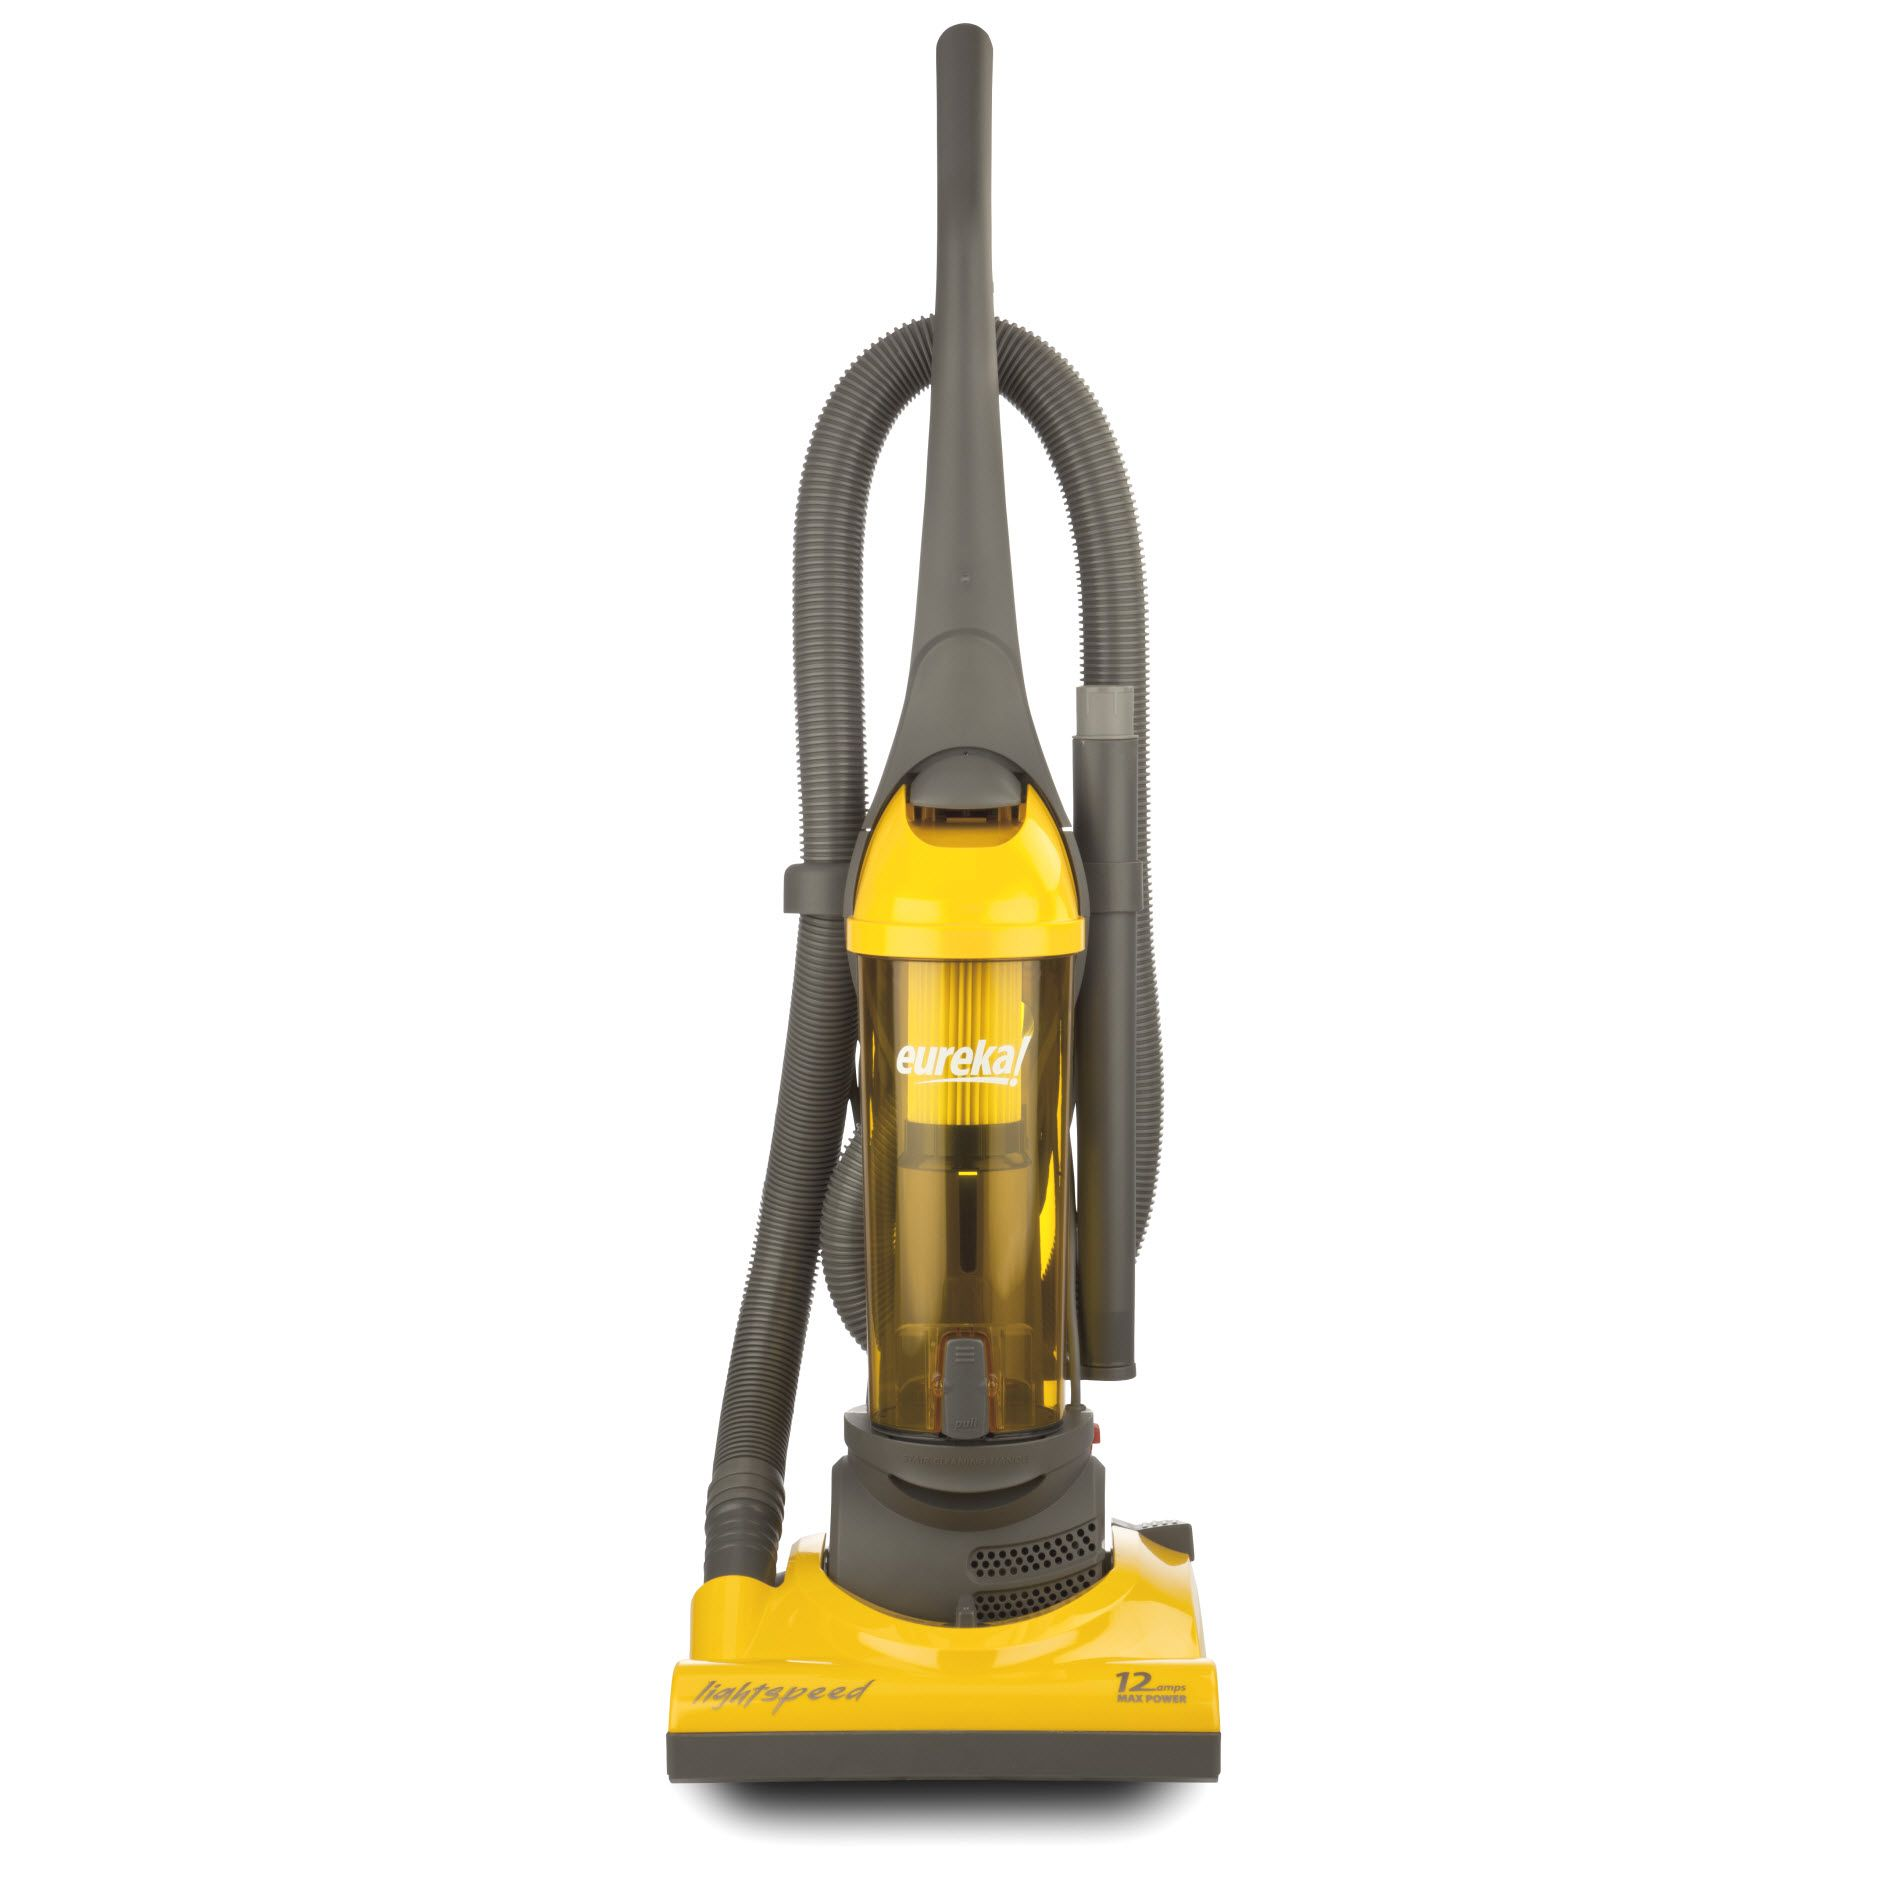 Vacuums & Floor Care at mygofer.com